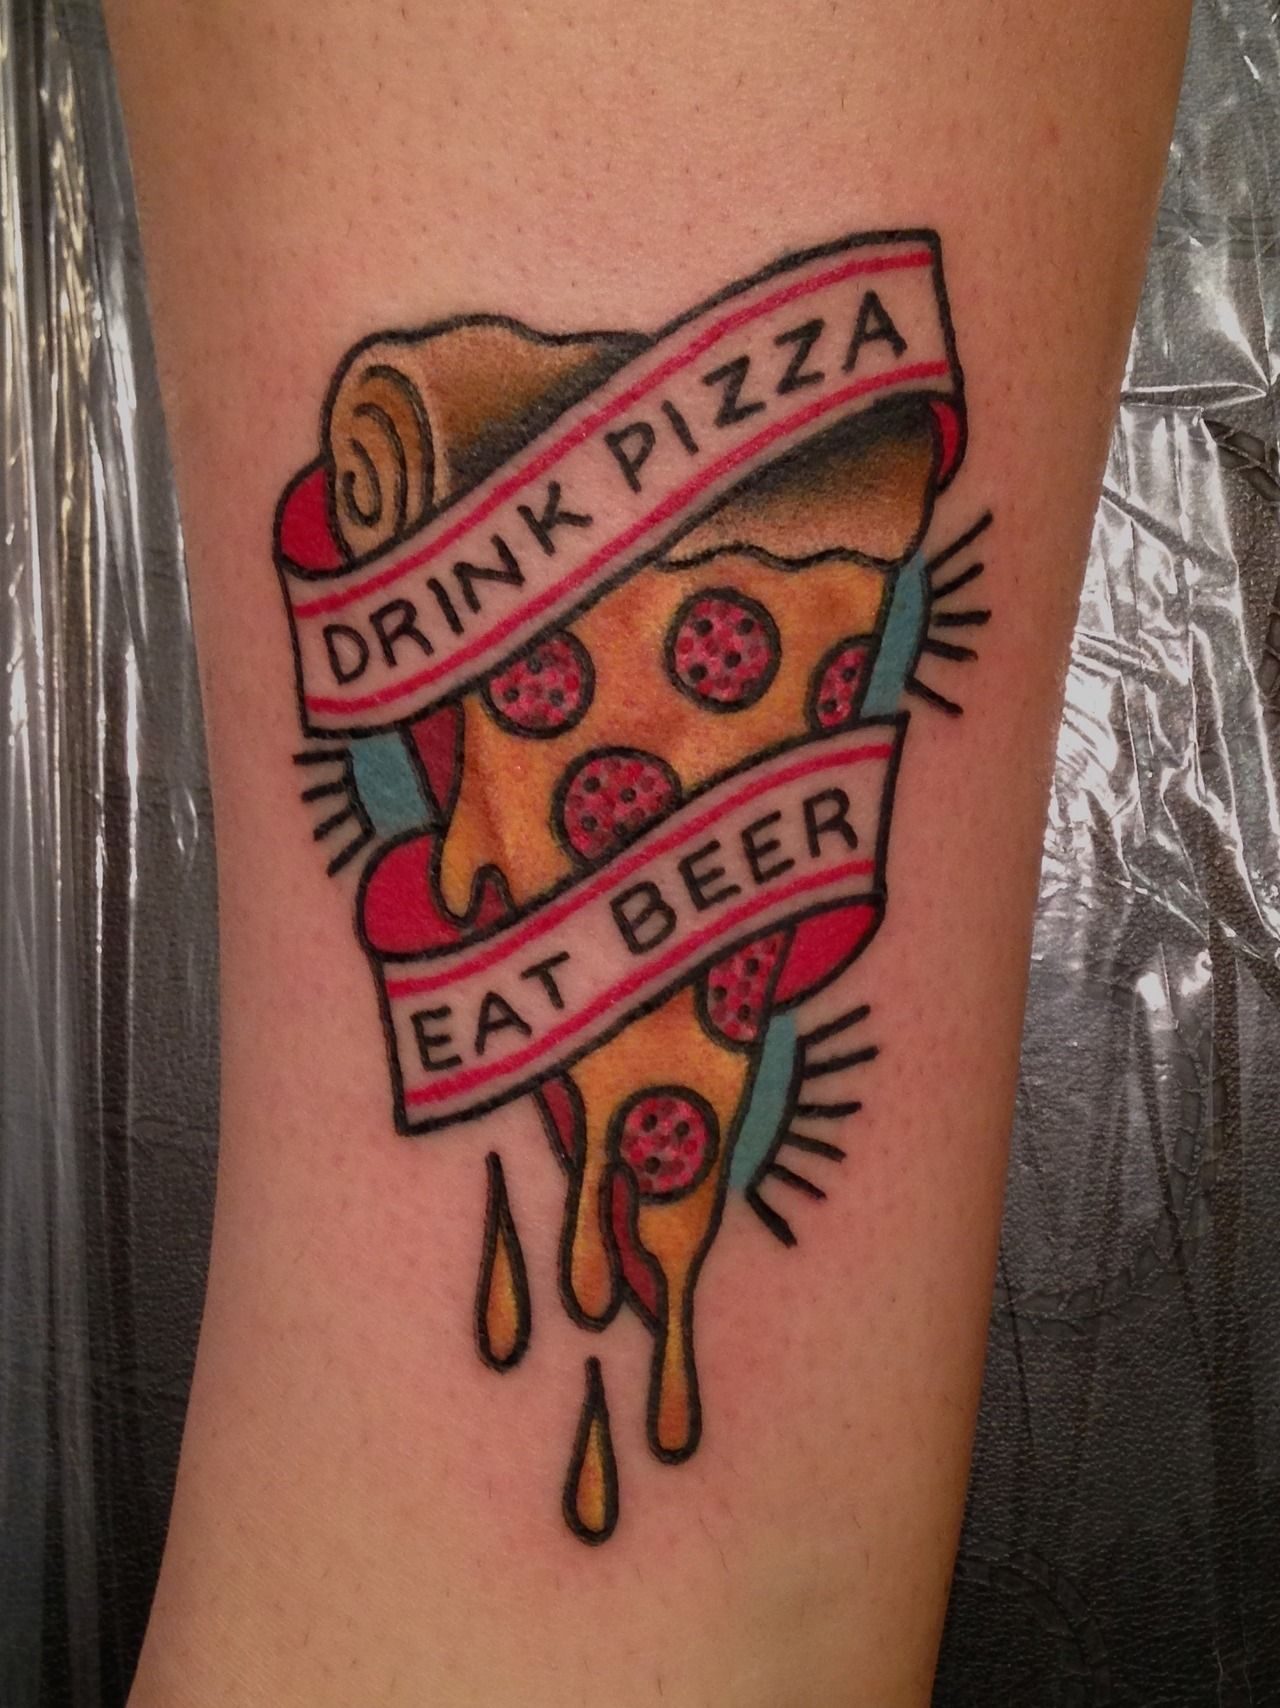 Tattoo Candy In Chicago By Allie Marie She Did A Great Job Beer Tattoos Pizza Tattoo Tattoos